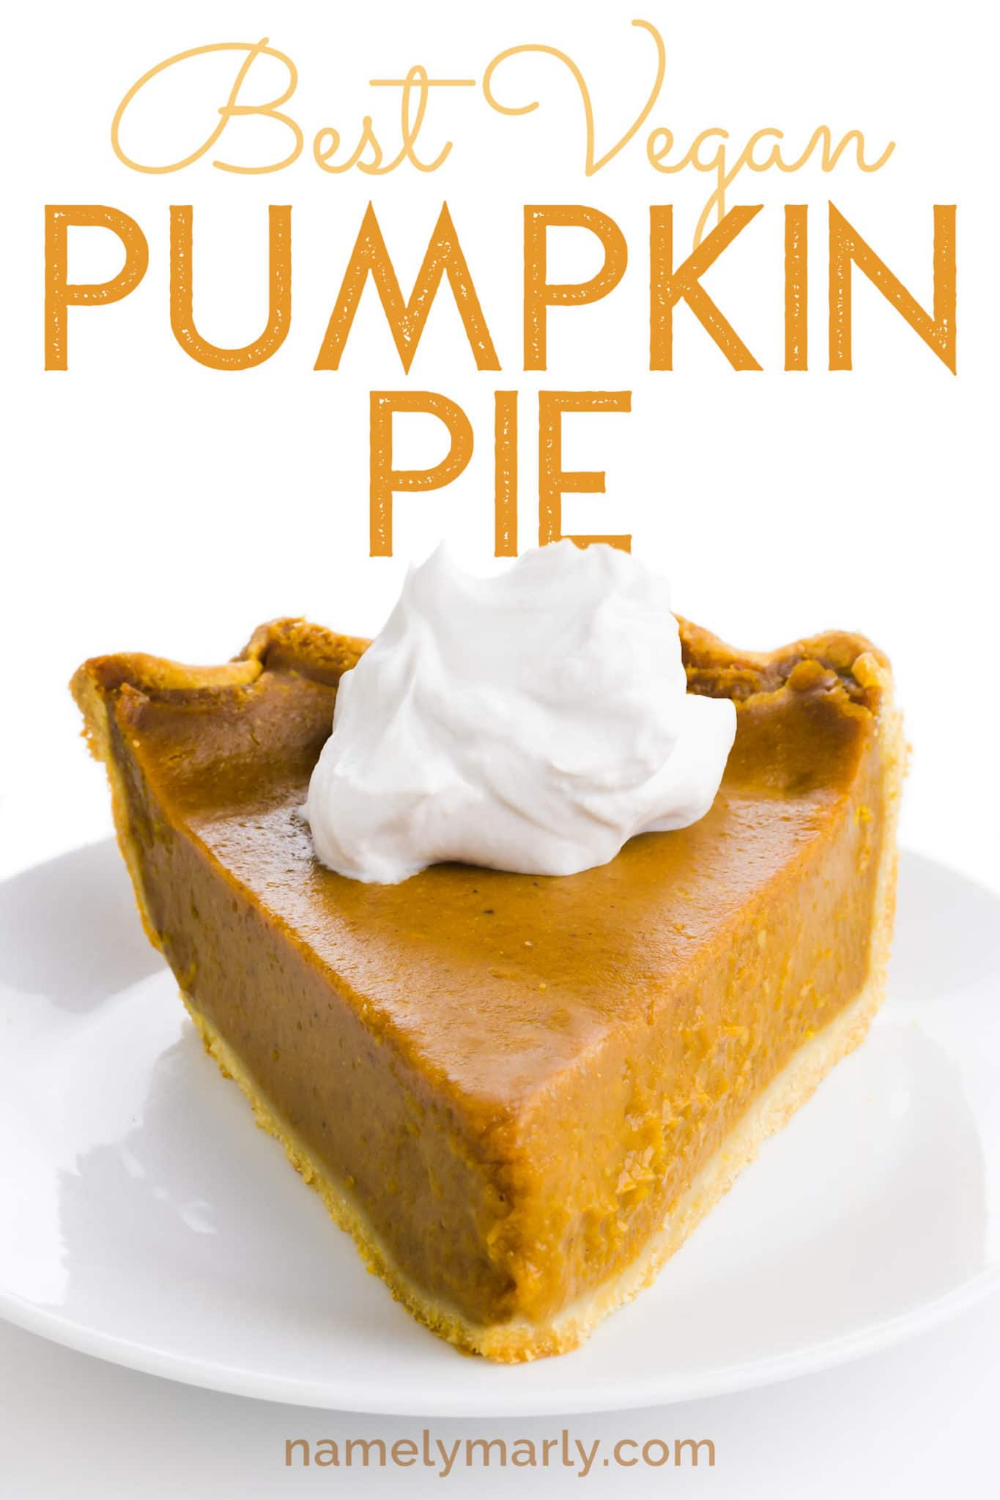 This Amazing Vegan Pumpkin Pie Recipe Is What You Want To Display On Your Holiday Dessert Table Vegan Pumpkin Pie Recipe Vegan Pumpkin Pie Pumpkin Pie Recipes